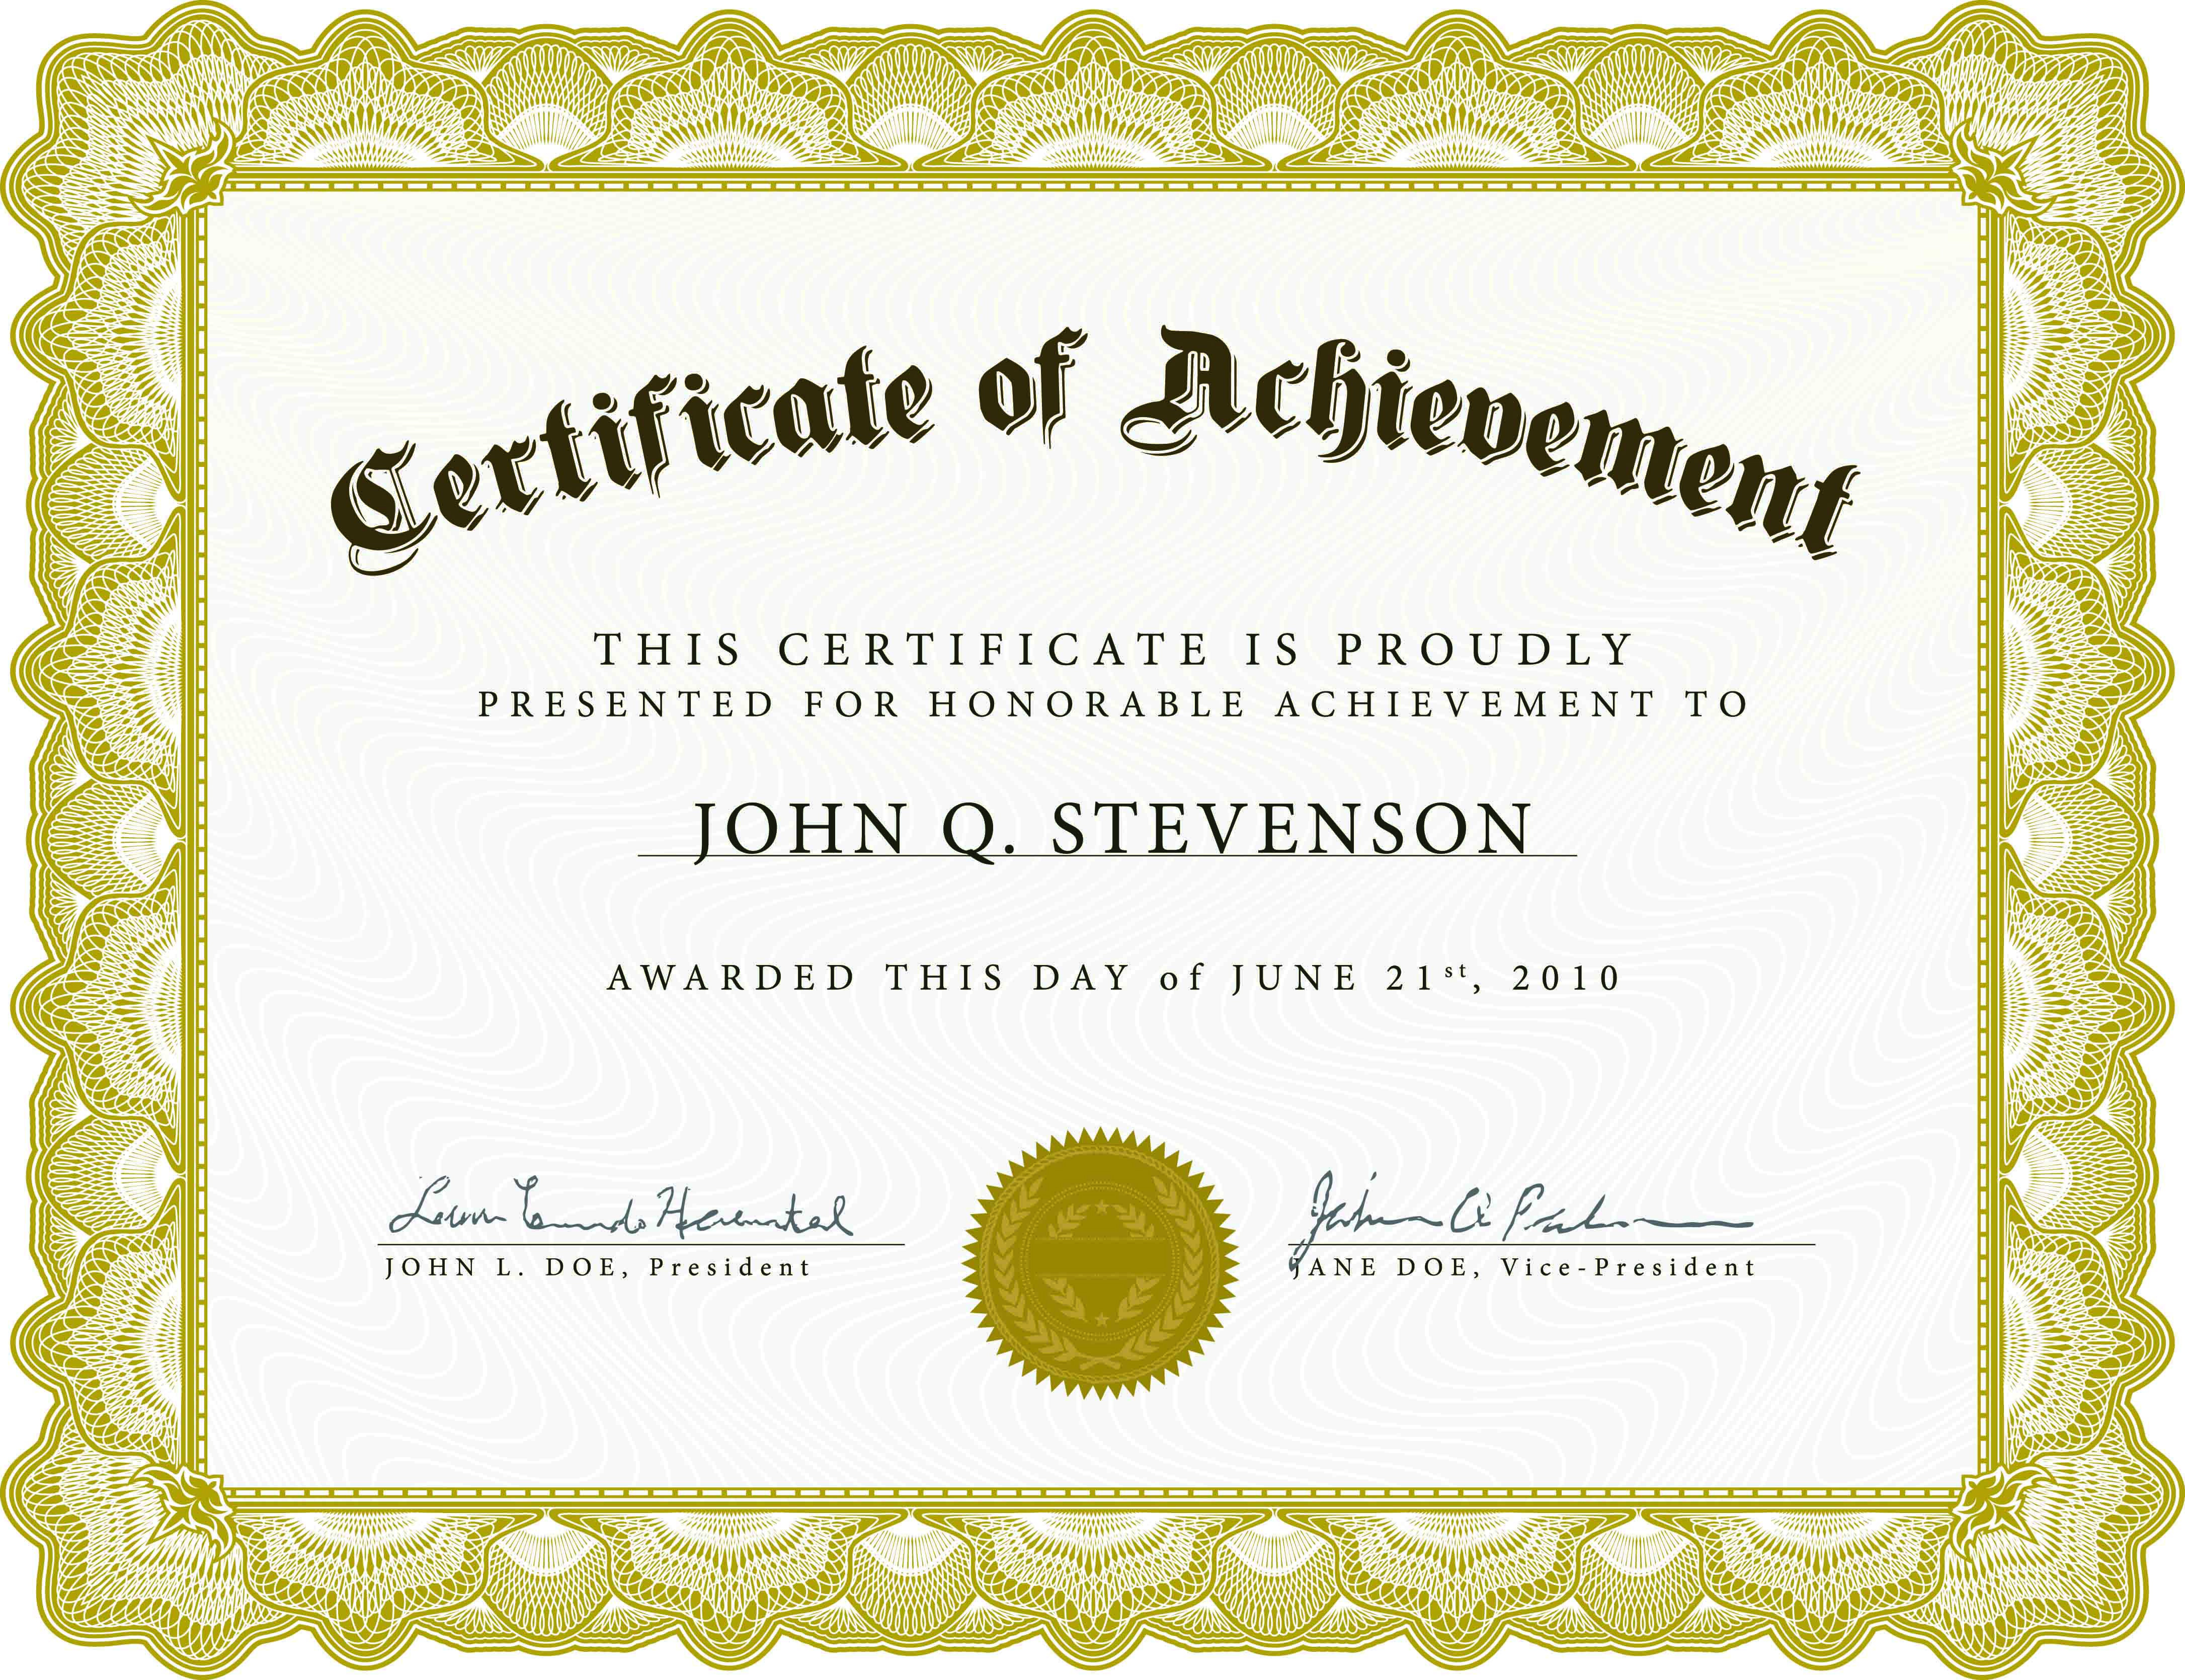 Download Blank Certificate Template X3Hr9Dto   St. Gabriel's Youth - Free Printable Blank Certificates Of Achievement